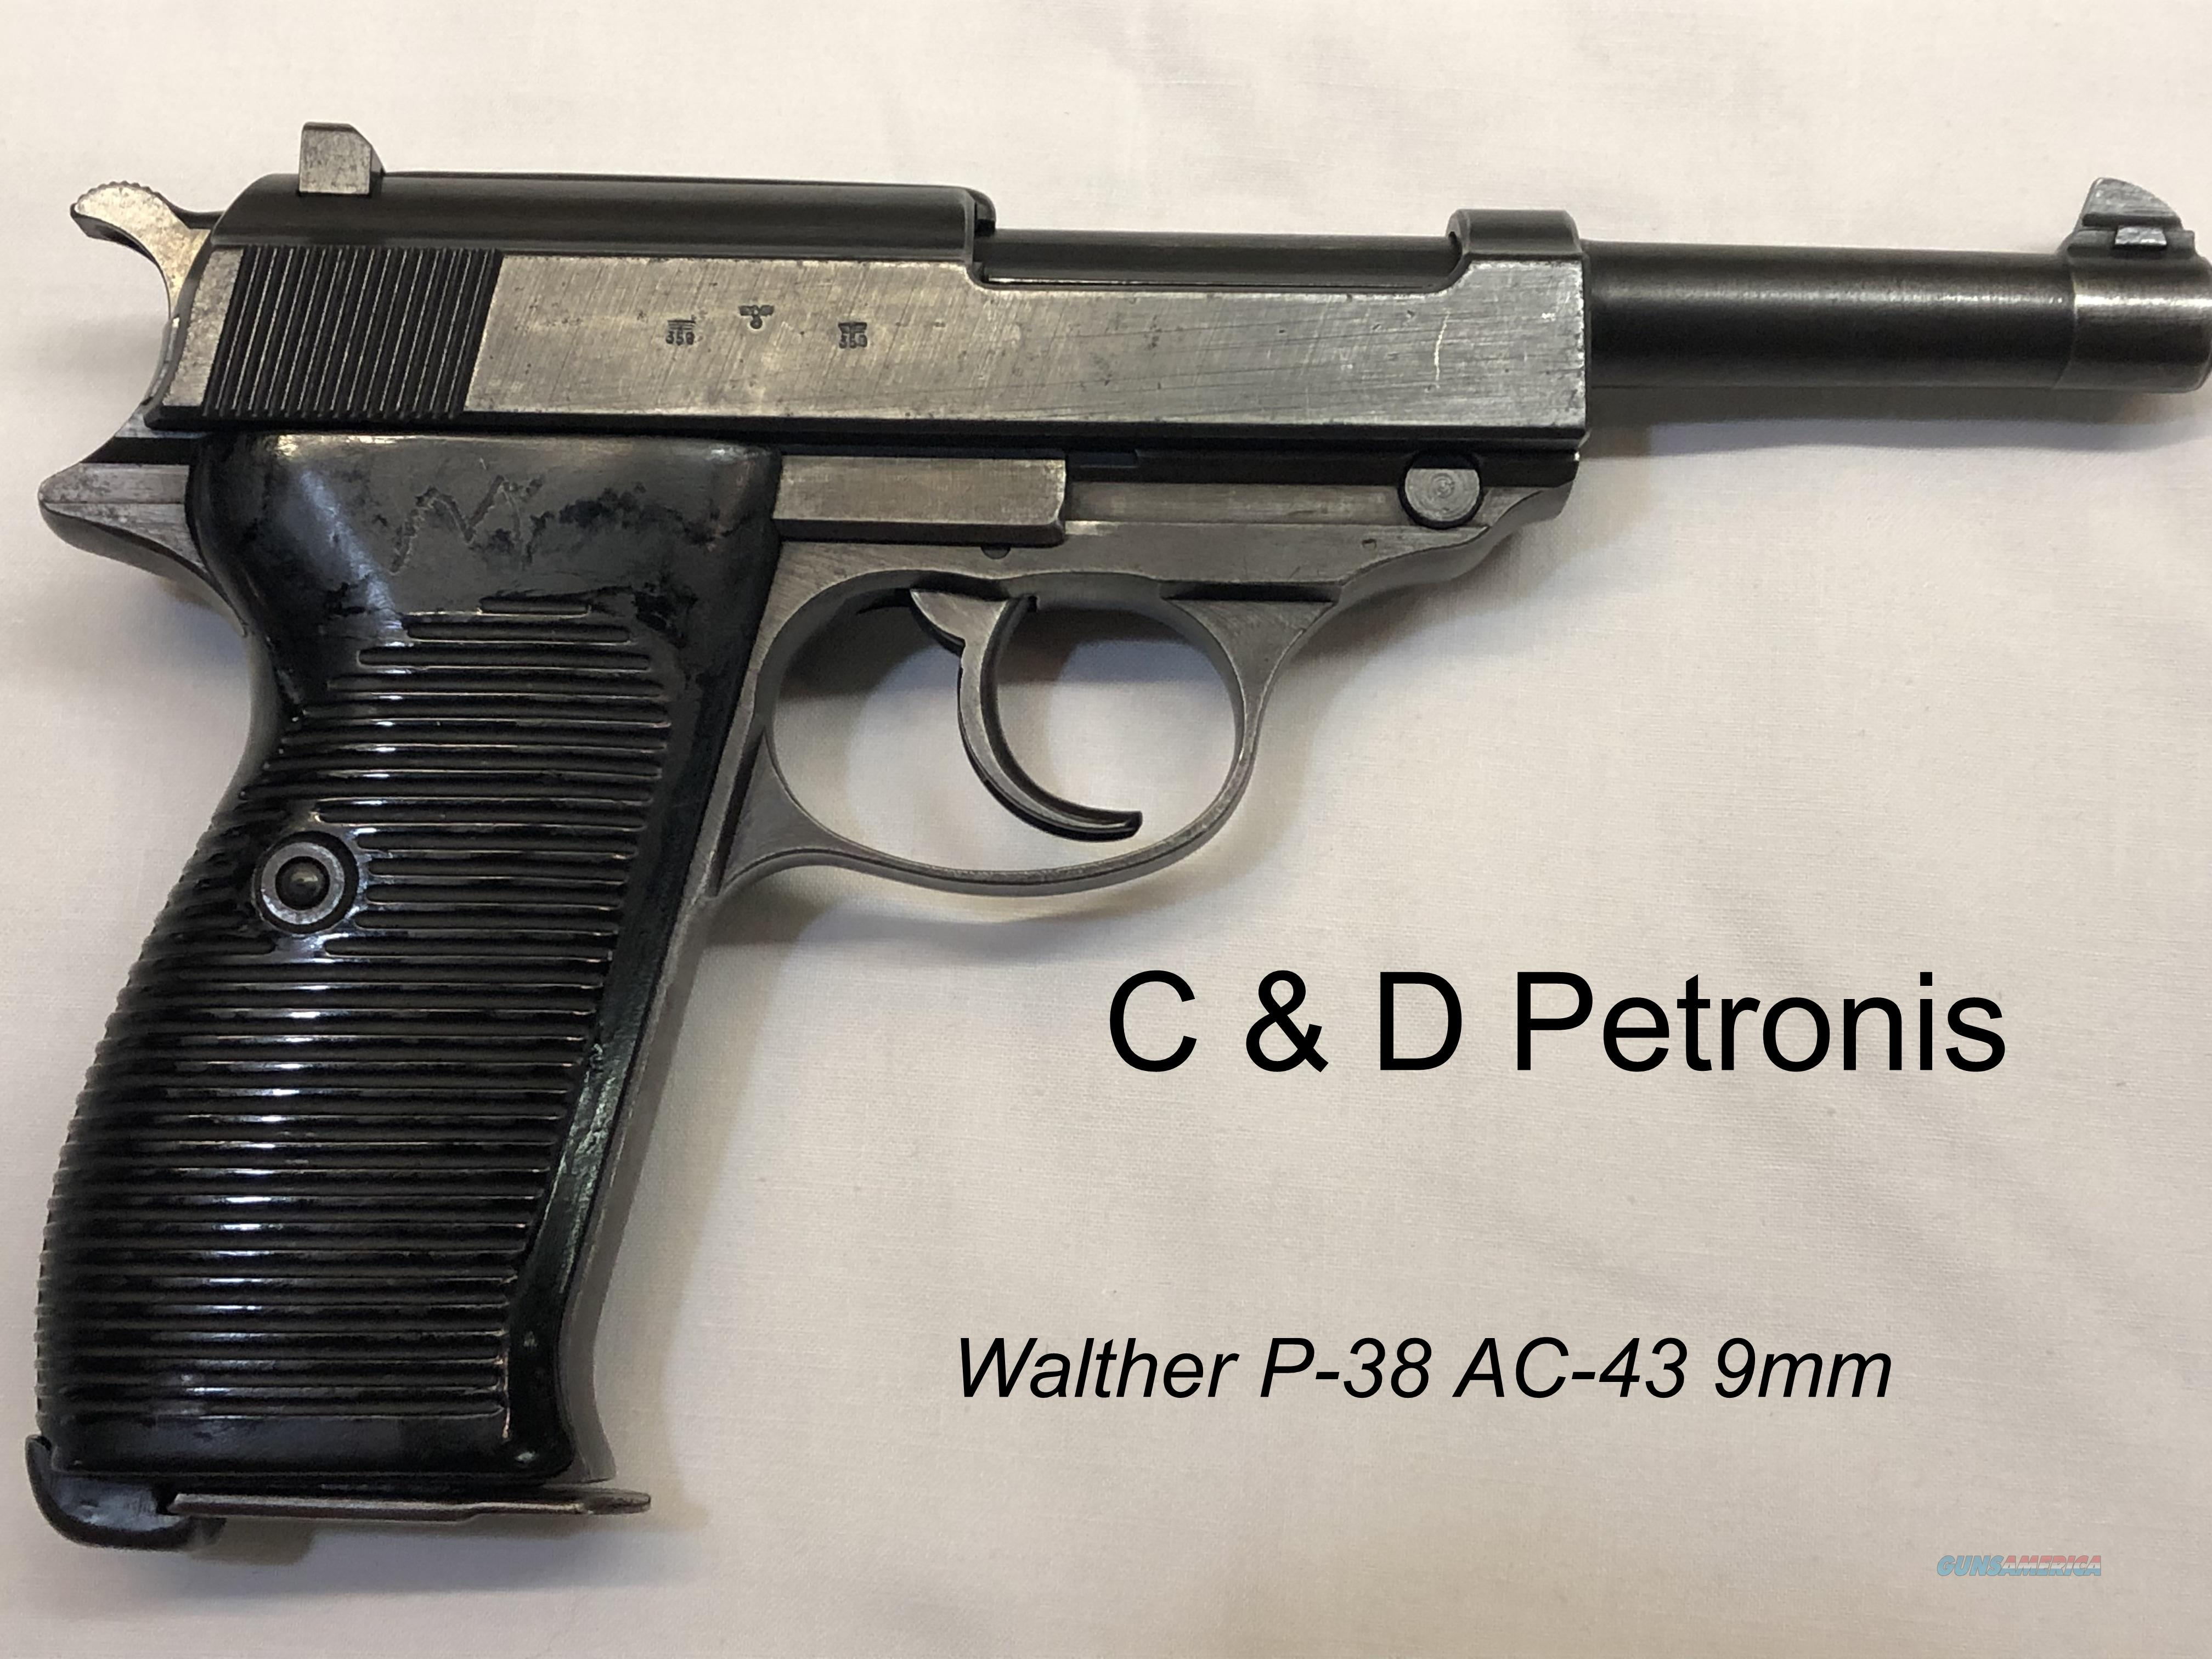 Walther P-38 WWII Pistol AC-43